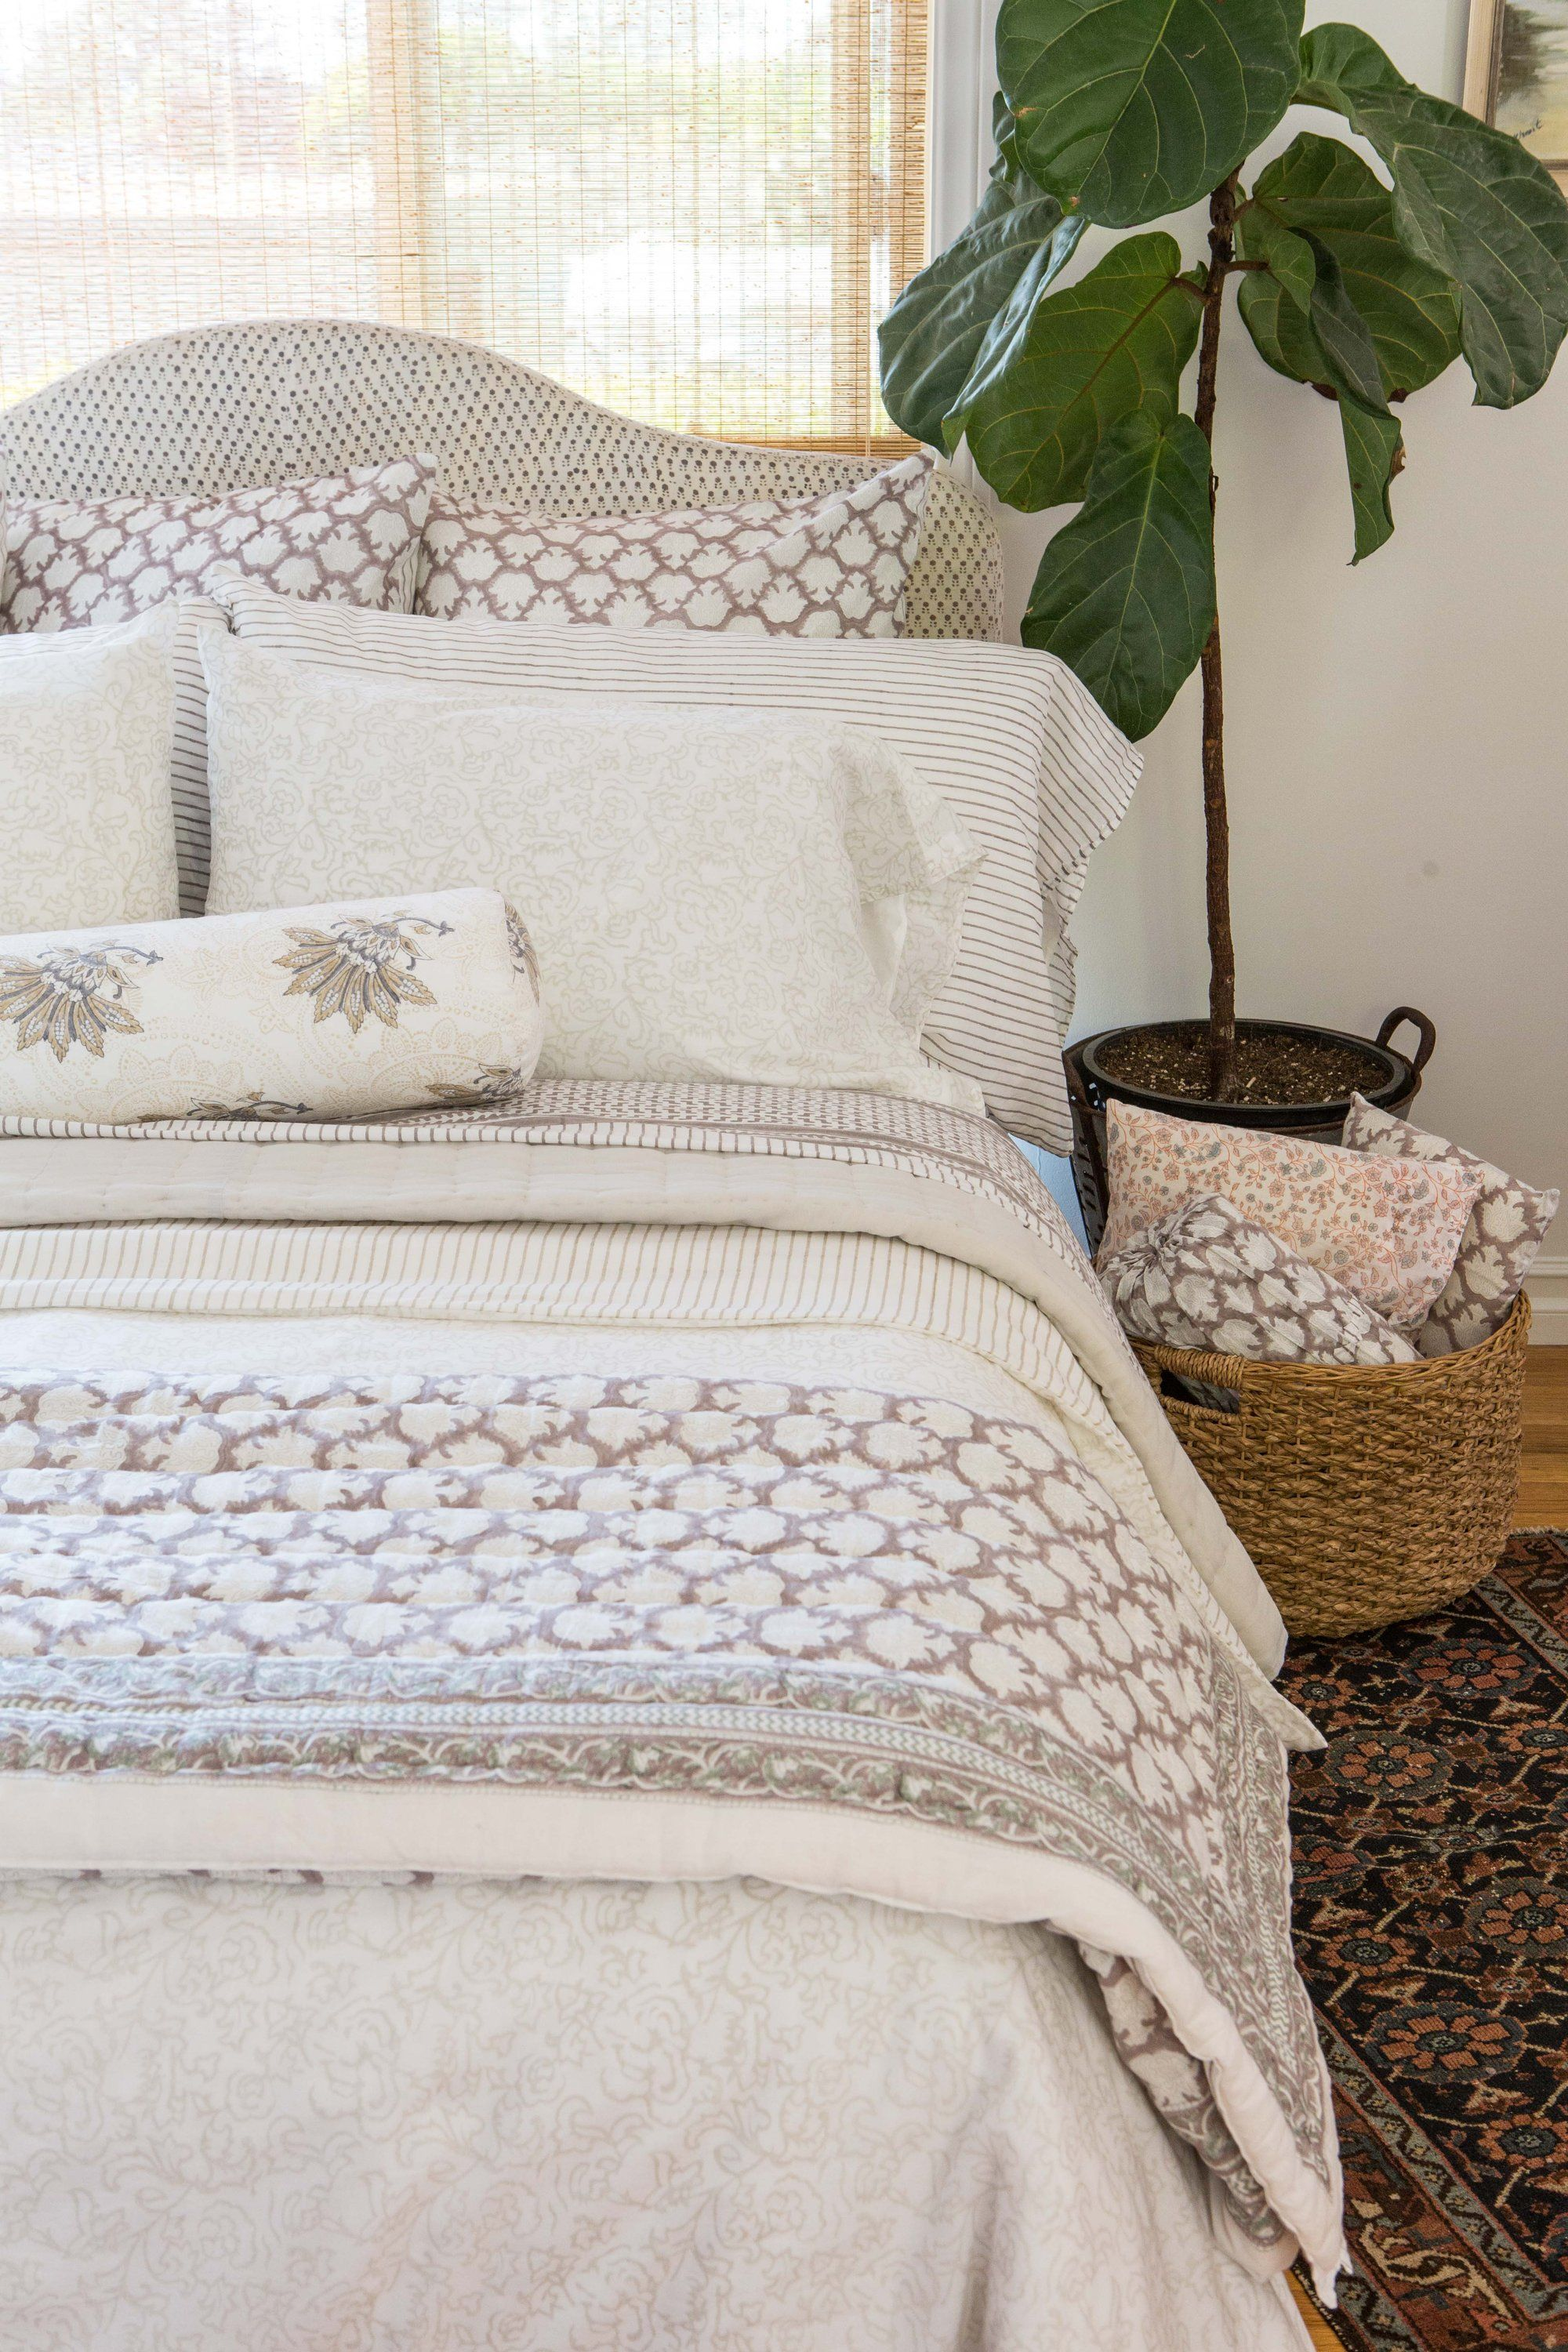 Image of Crest Quilt Cool beds, Queen quilt, Indian bedding